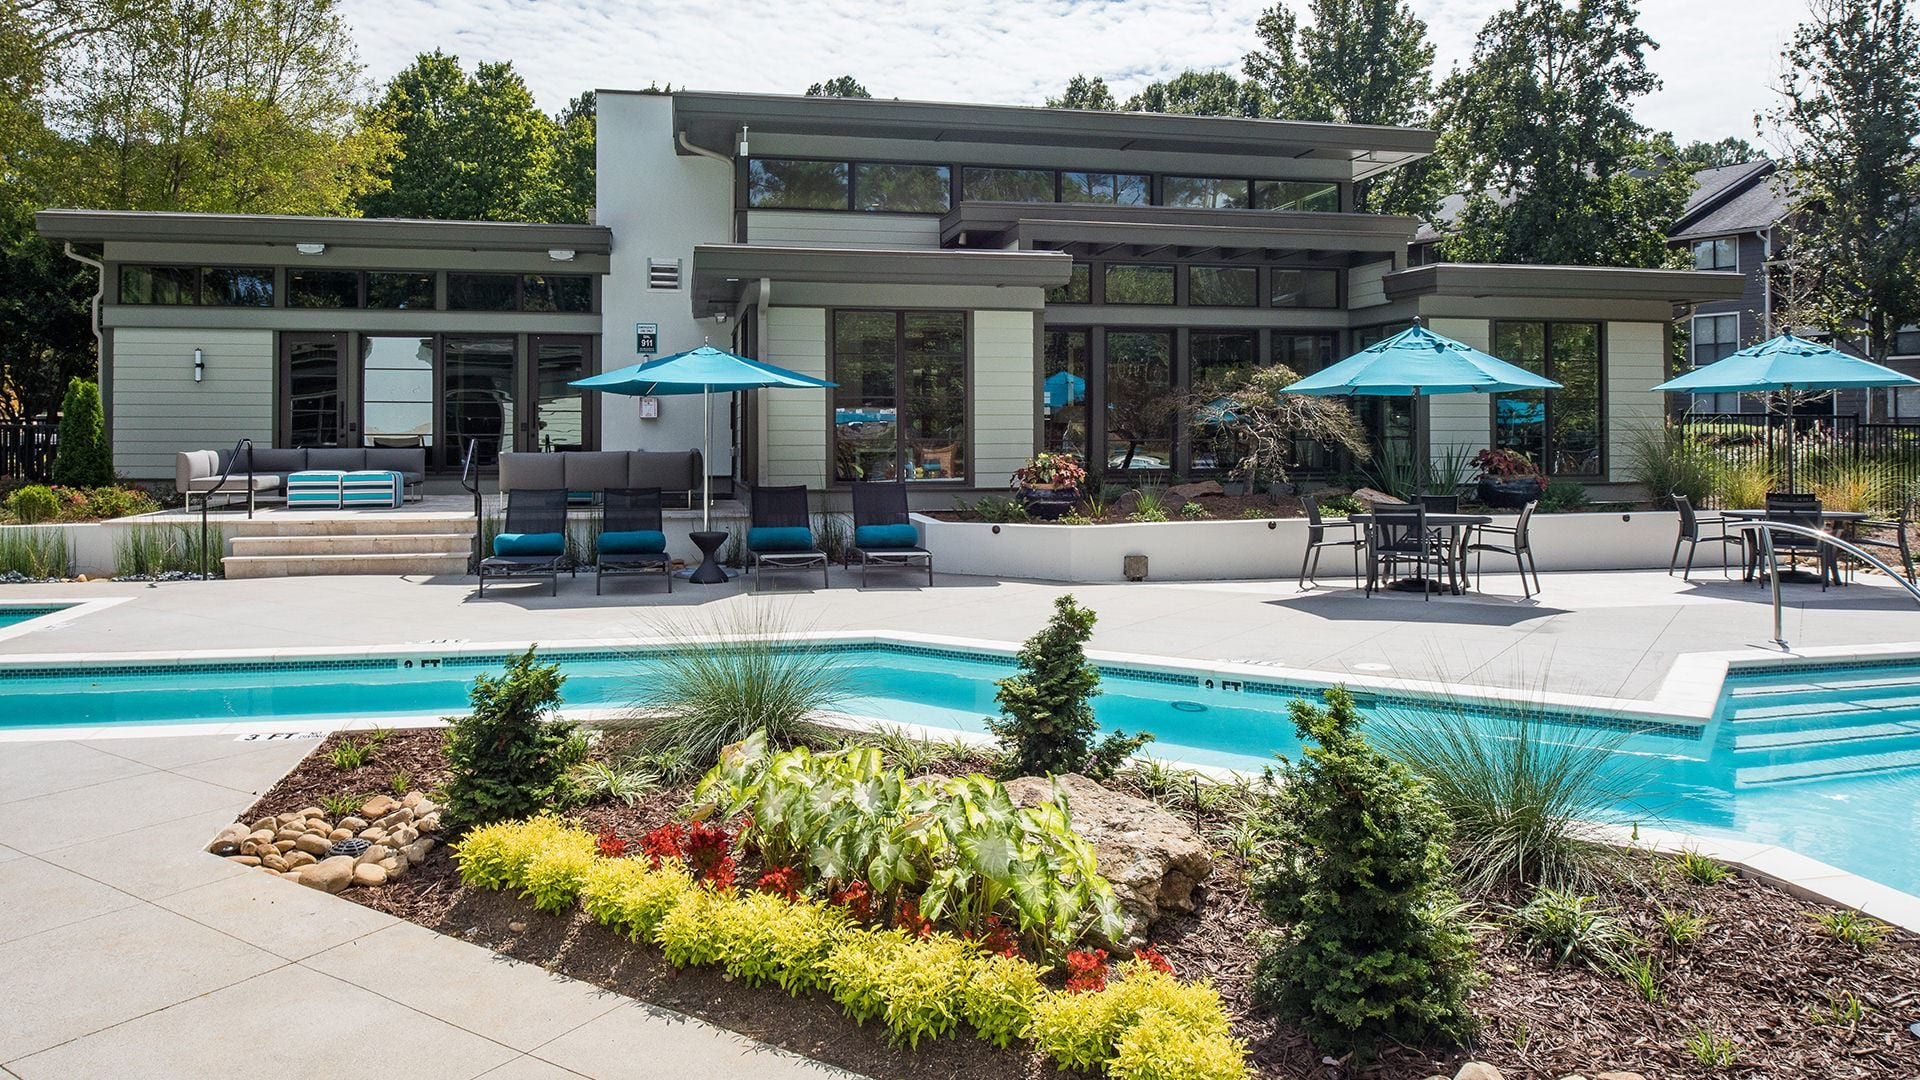 Apartment pool and sun deck at Viridian by Cortland